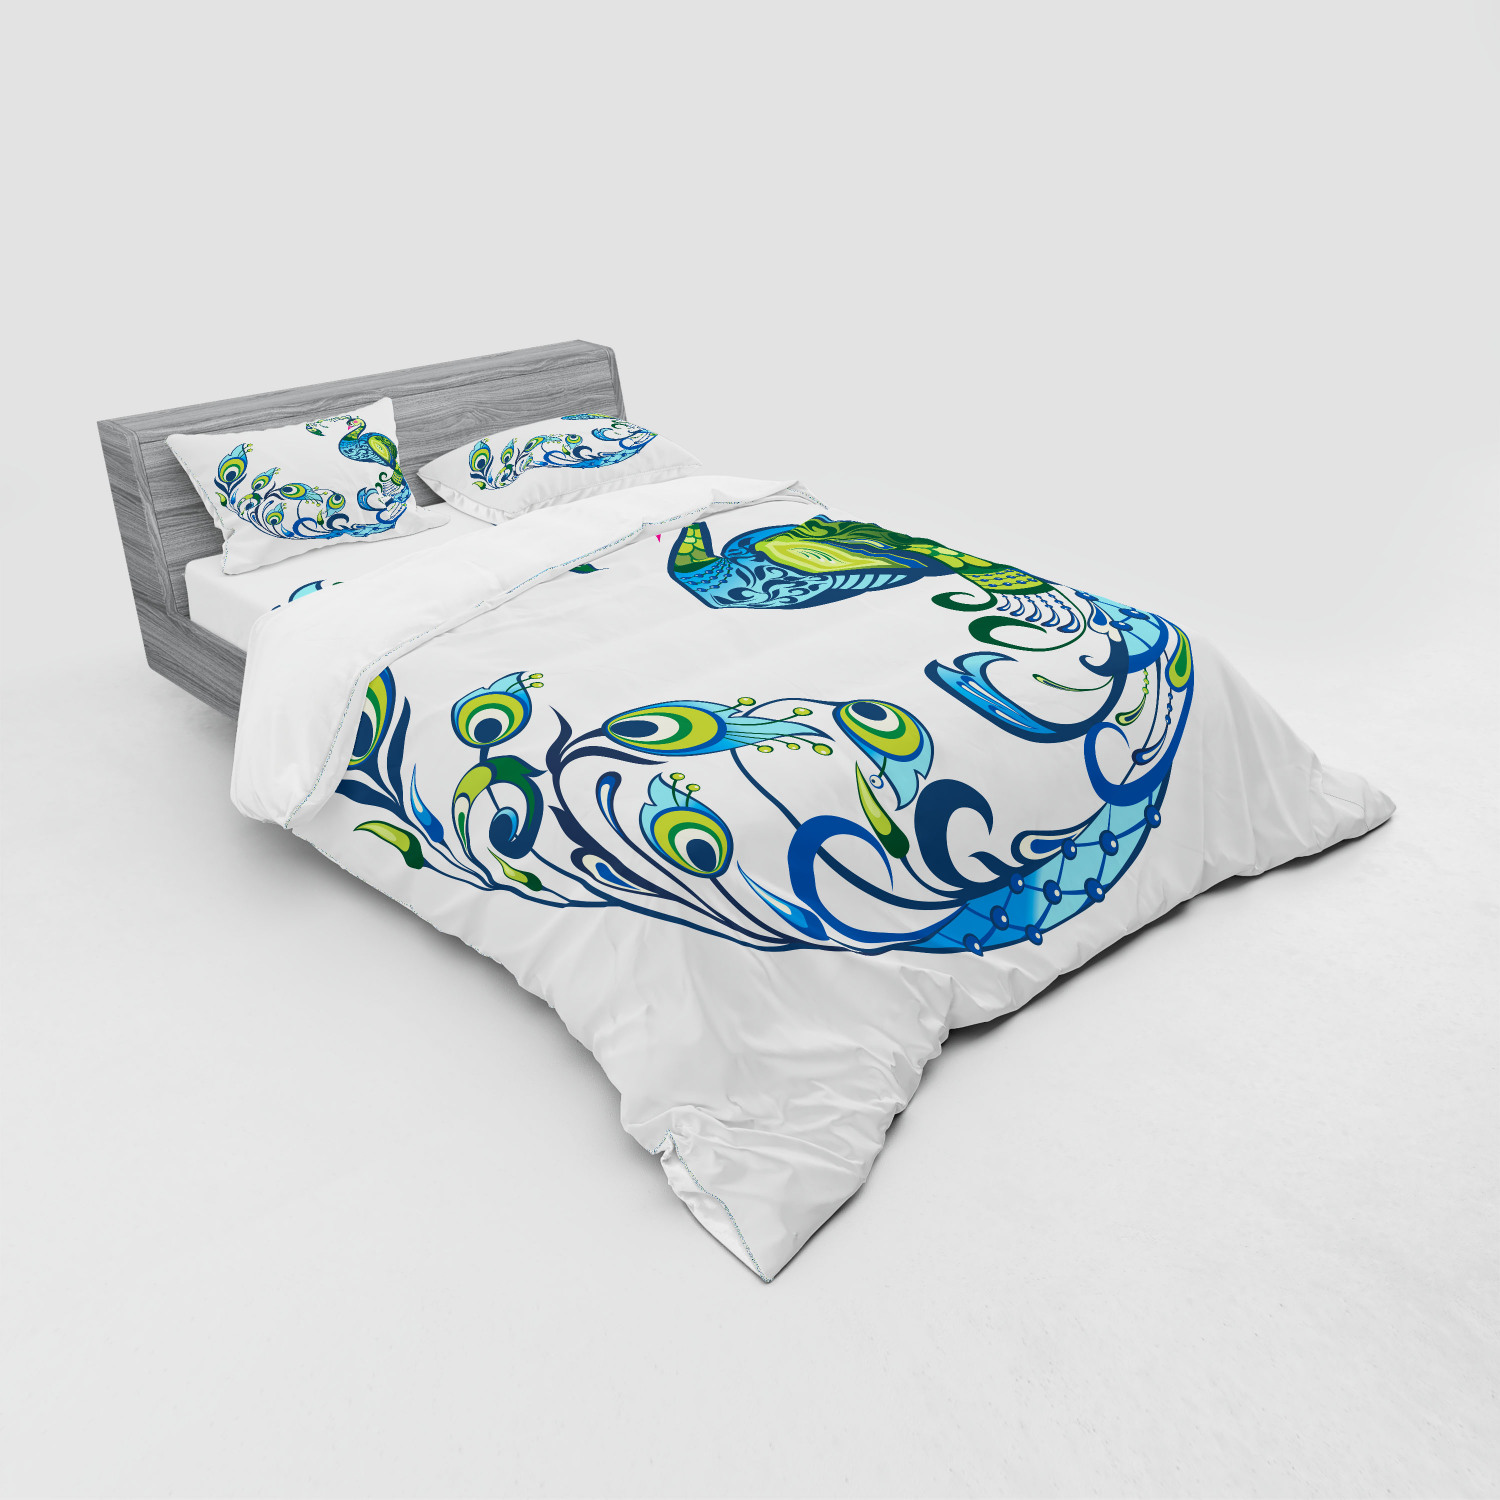 thumbnail 55 - Ambesonne Summer Bedding Set Duvet Cover Sham Fitted Sheet in 3 Sizes